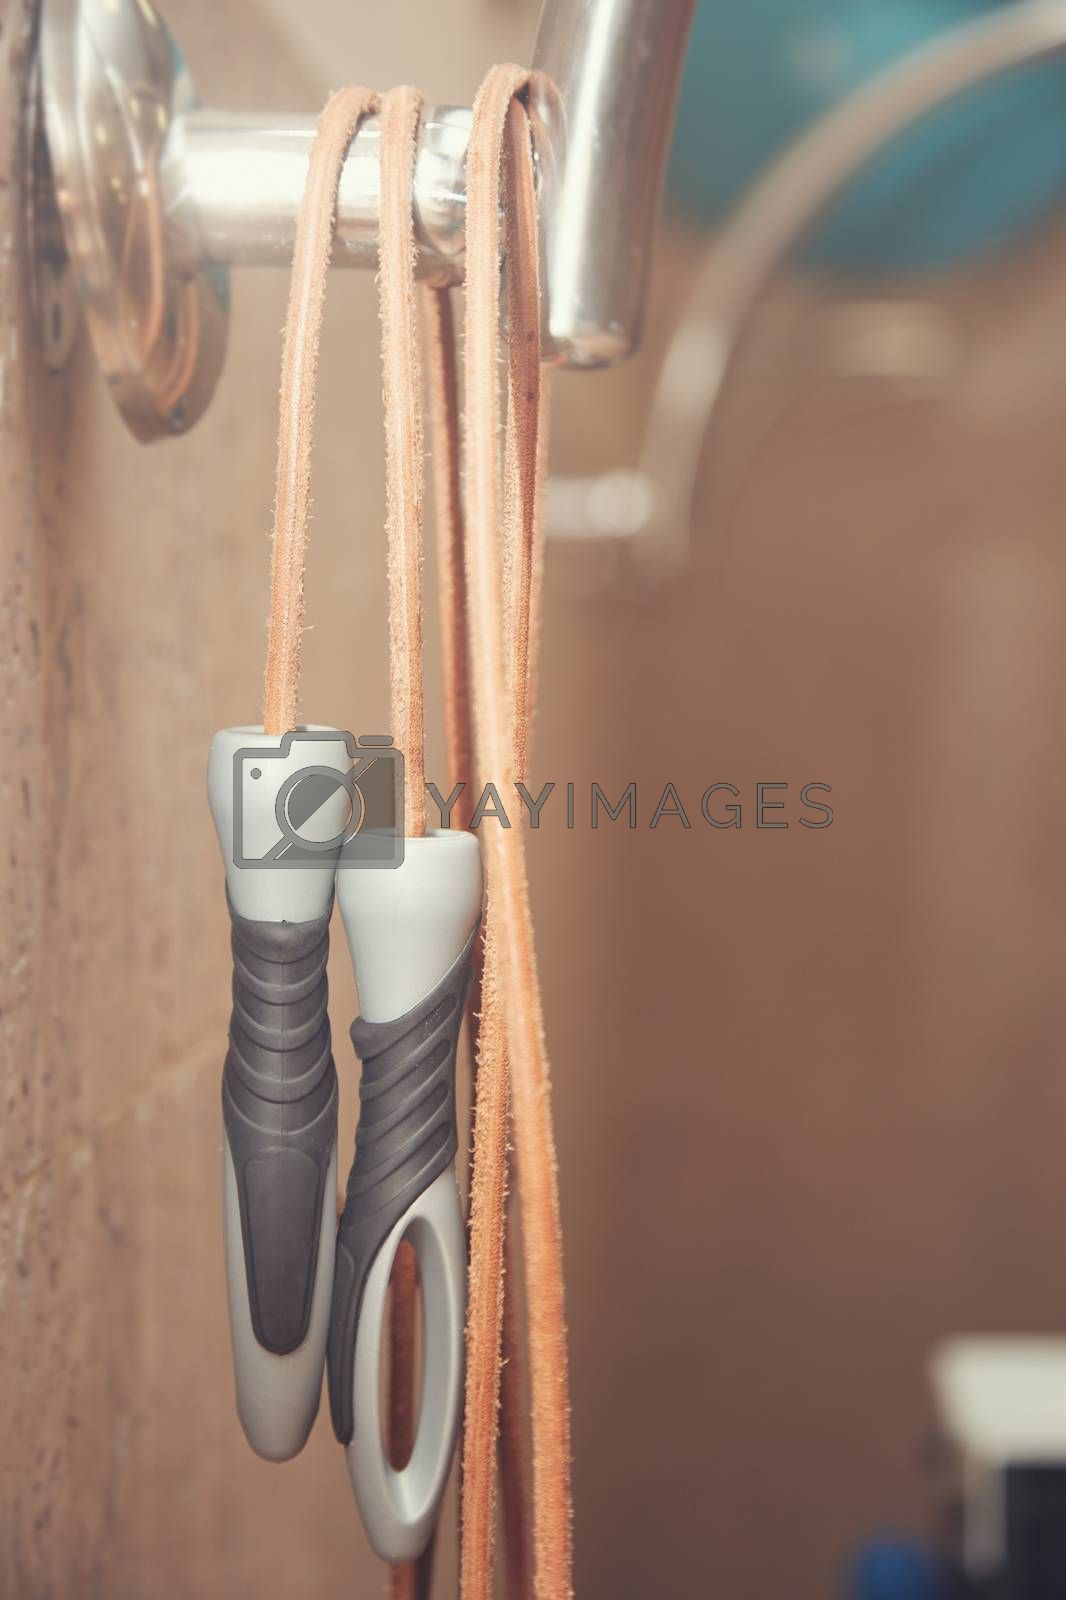 Jump rope in the gym class. Close-up vertical photo